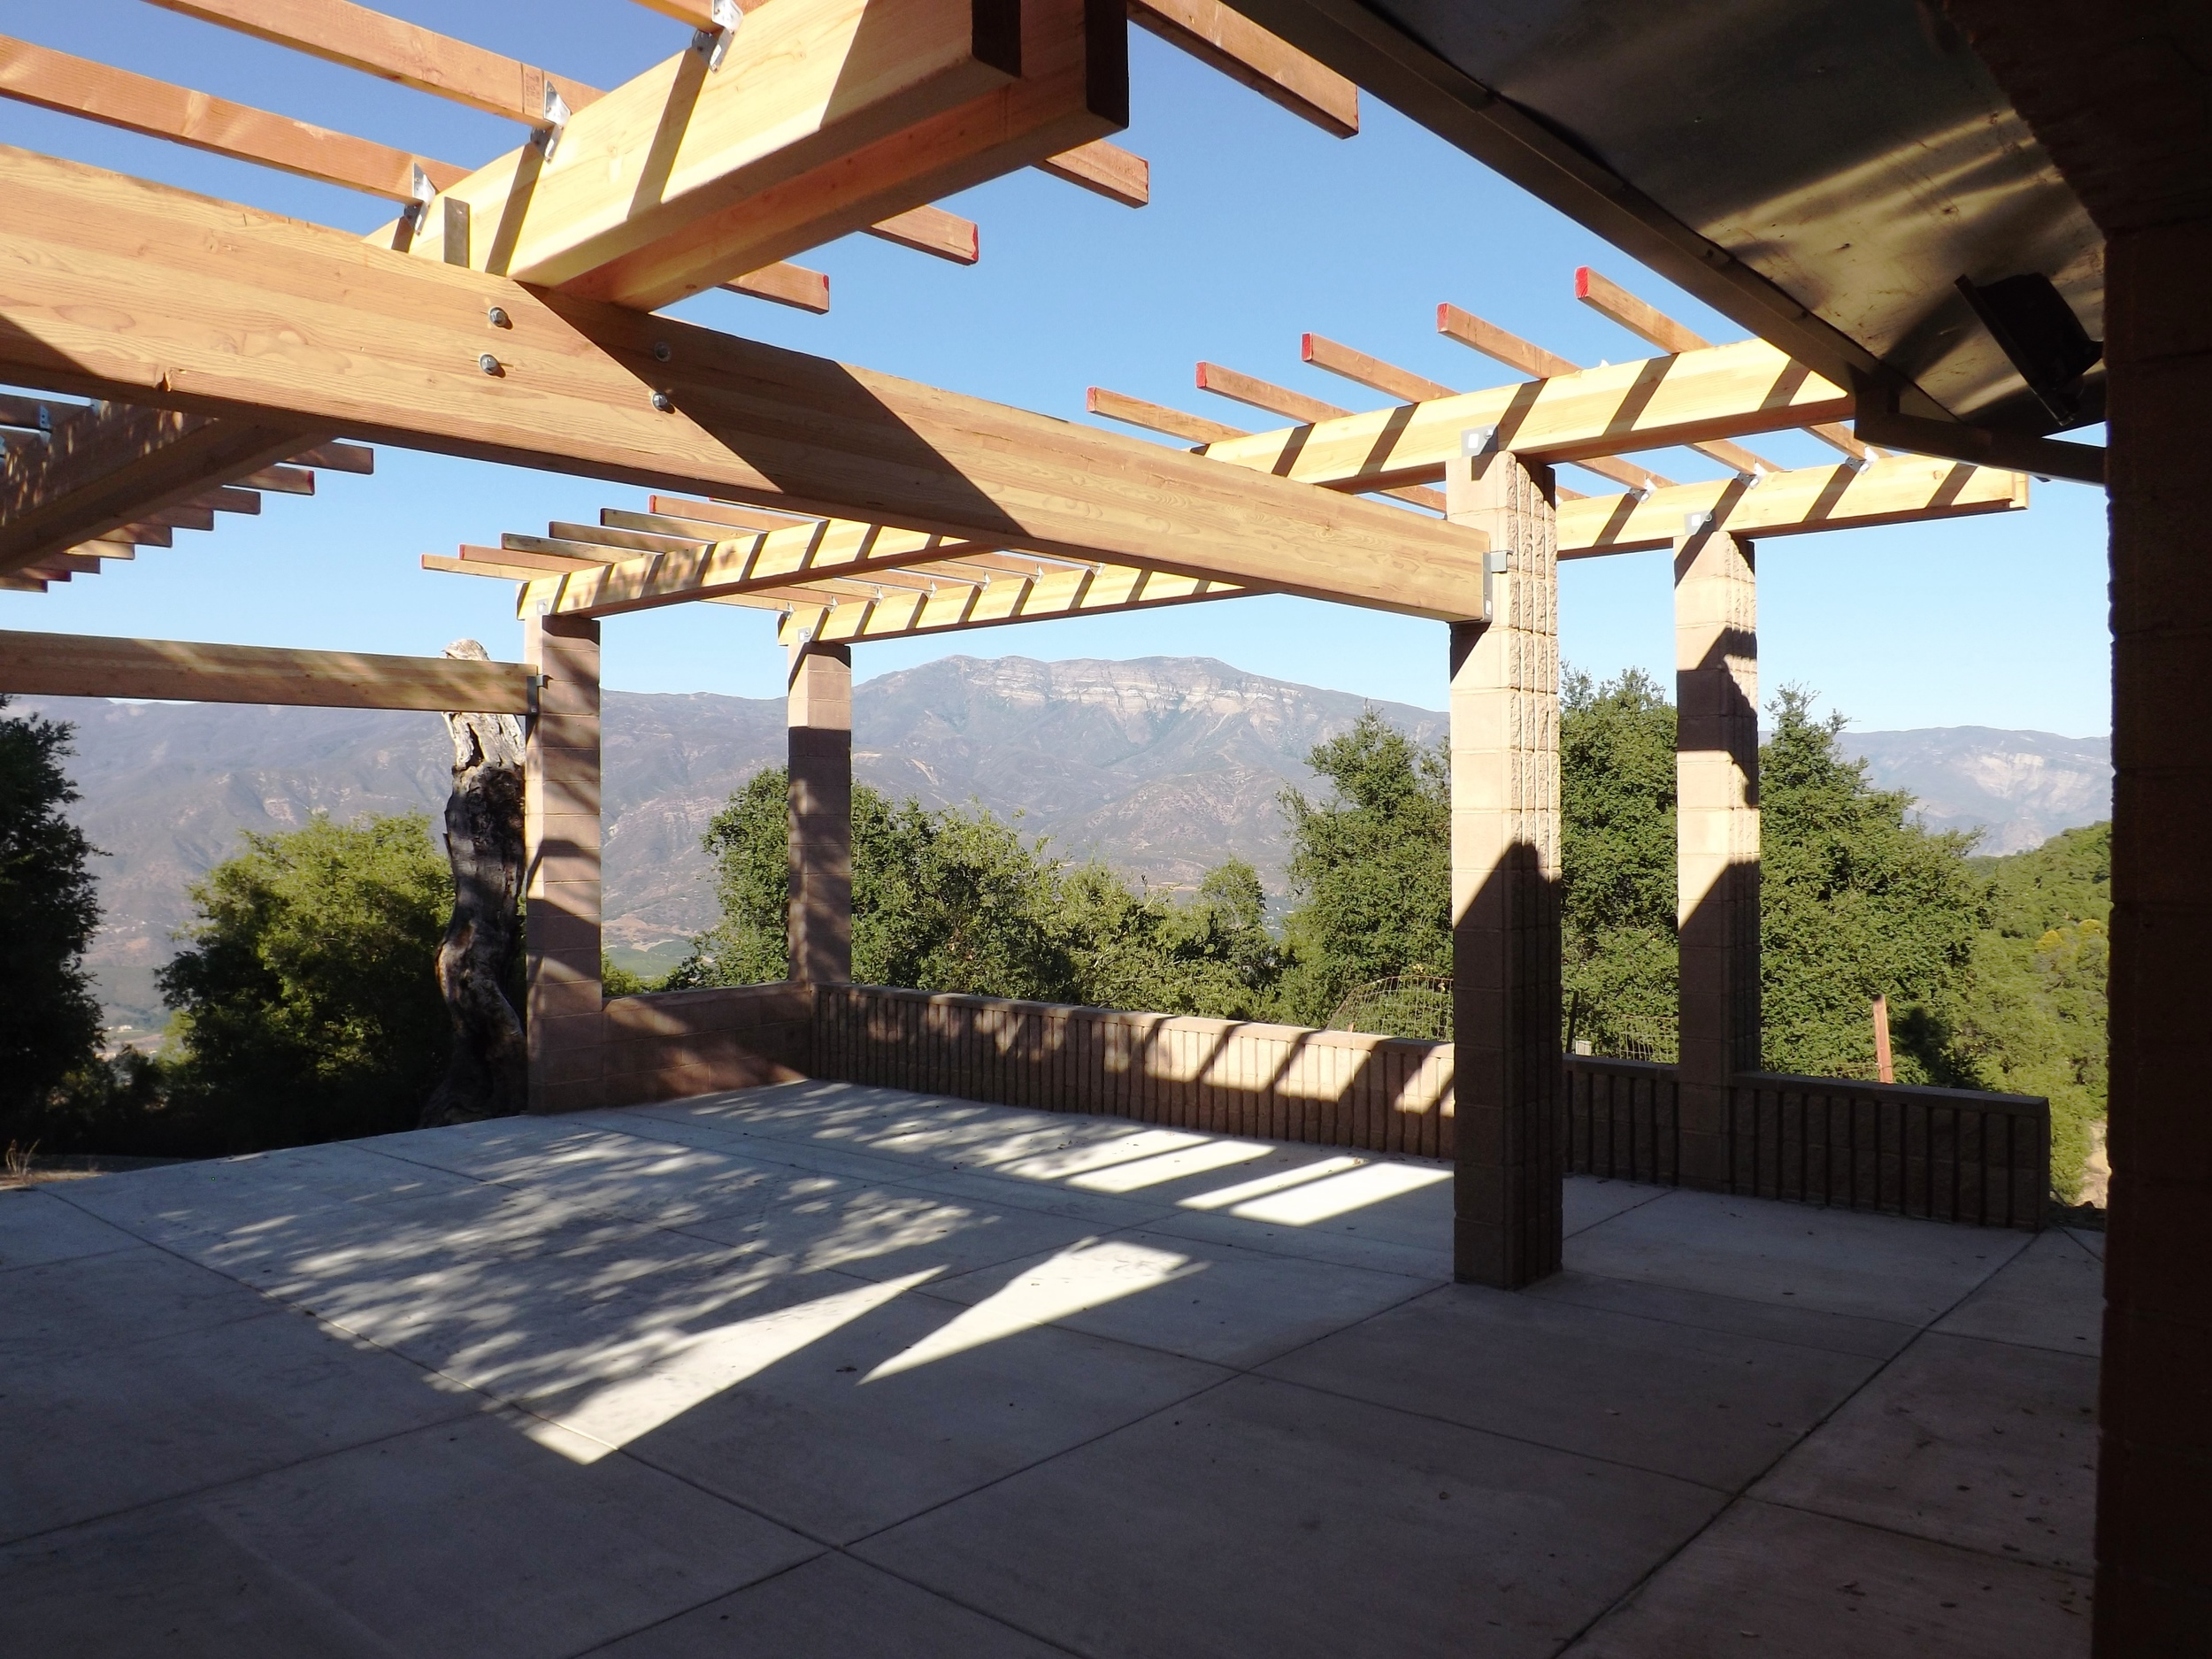 MAJOR CONSTRUCTION IS COMPLETED on the Topa Topa Patio in December 2012. The Topa Topa Bluffs are in the background. (Leslie Bridger photo, 2012.)